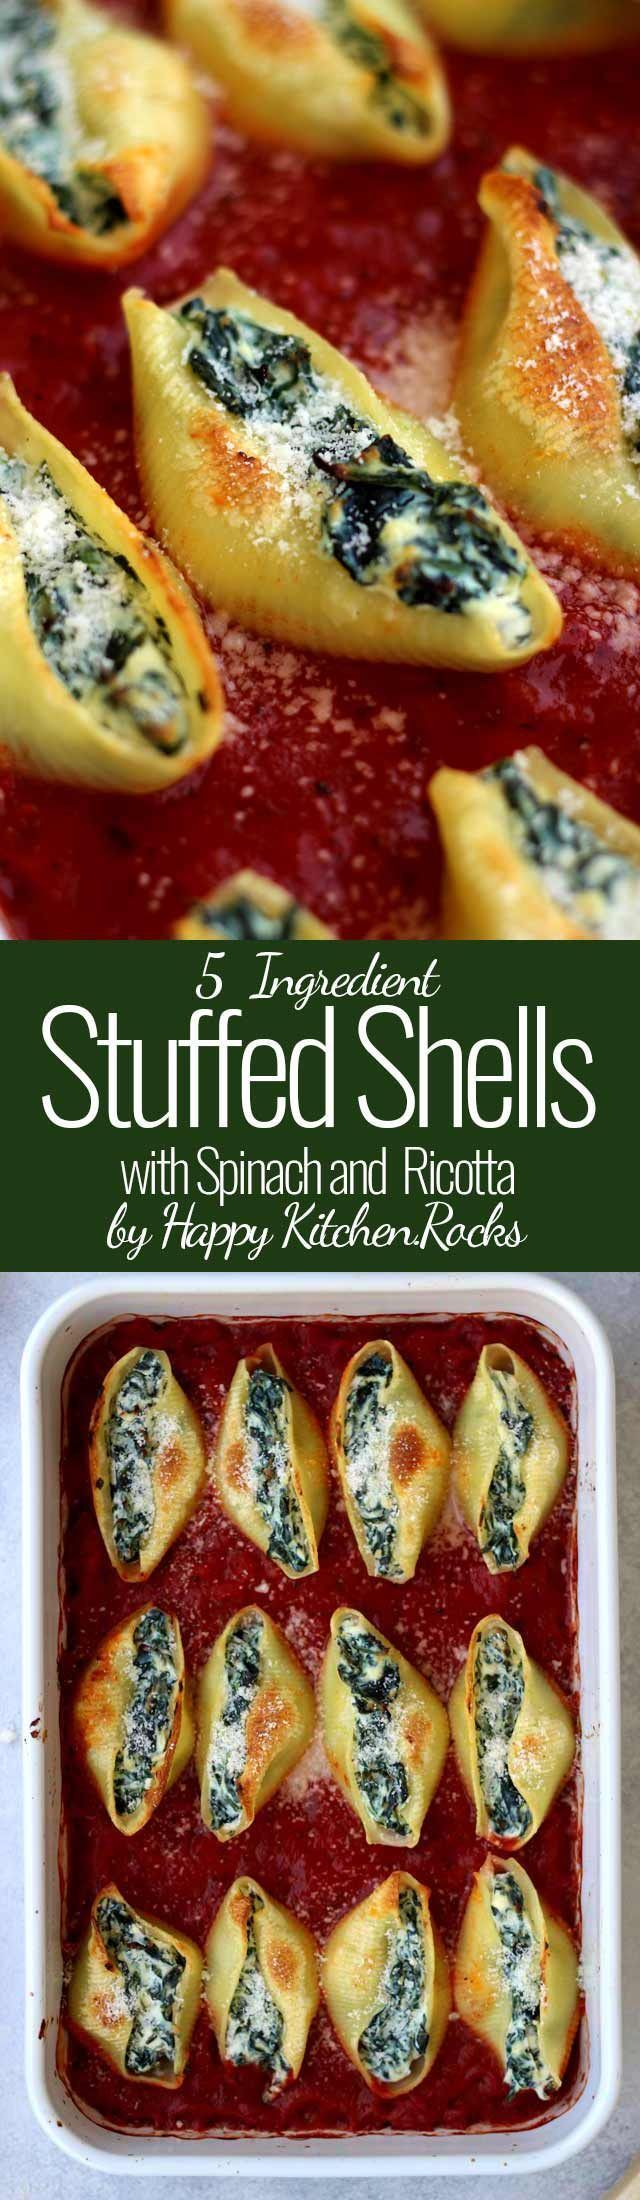 Super Easy 5 ingredient Stuffed Shells recipe with spinach and ricotta will take you no more than 30 minutes to make. Delicious, healthy, comforting and wholesome vegetarian pasta dinner you whole family will enjoy! #pasta #vegetarian #pastadinner #stuffe